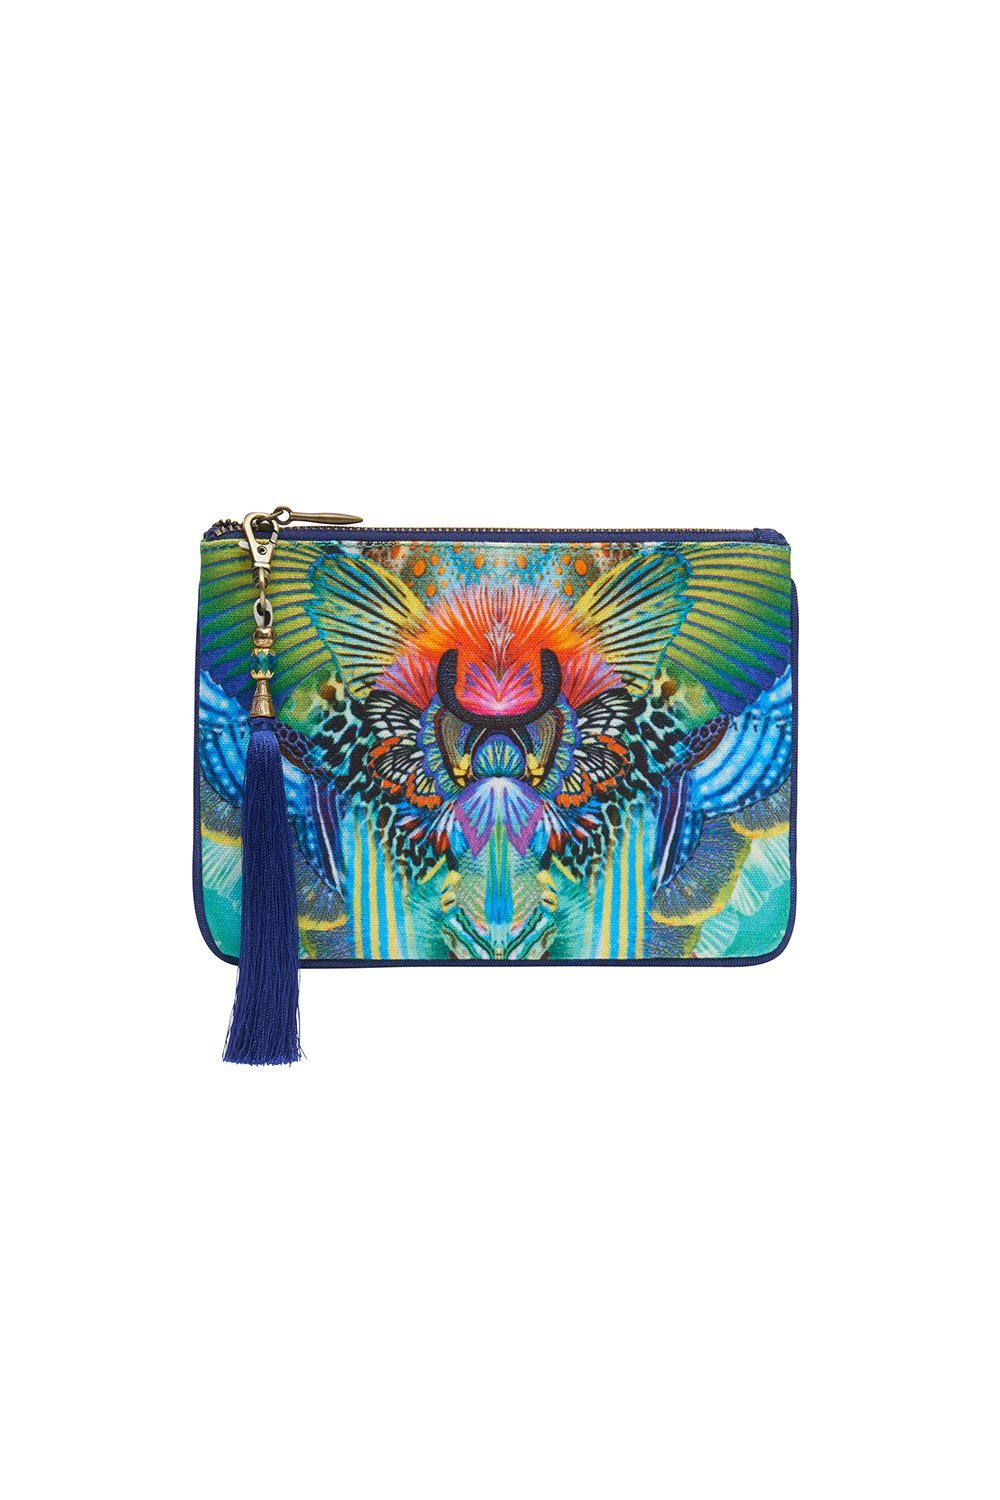 COIN AND PHONE PURSE REEF WARRIOR